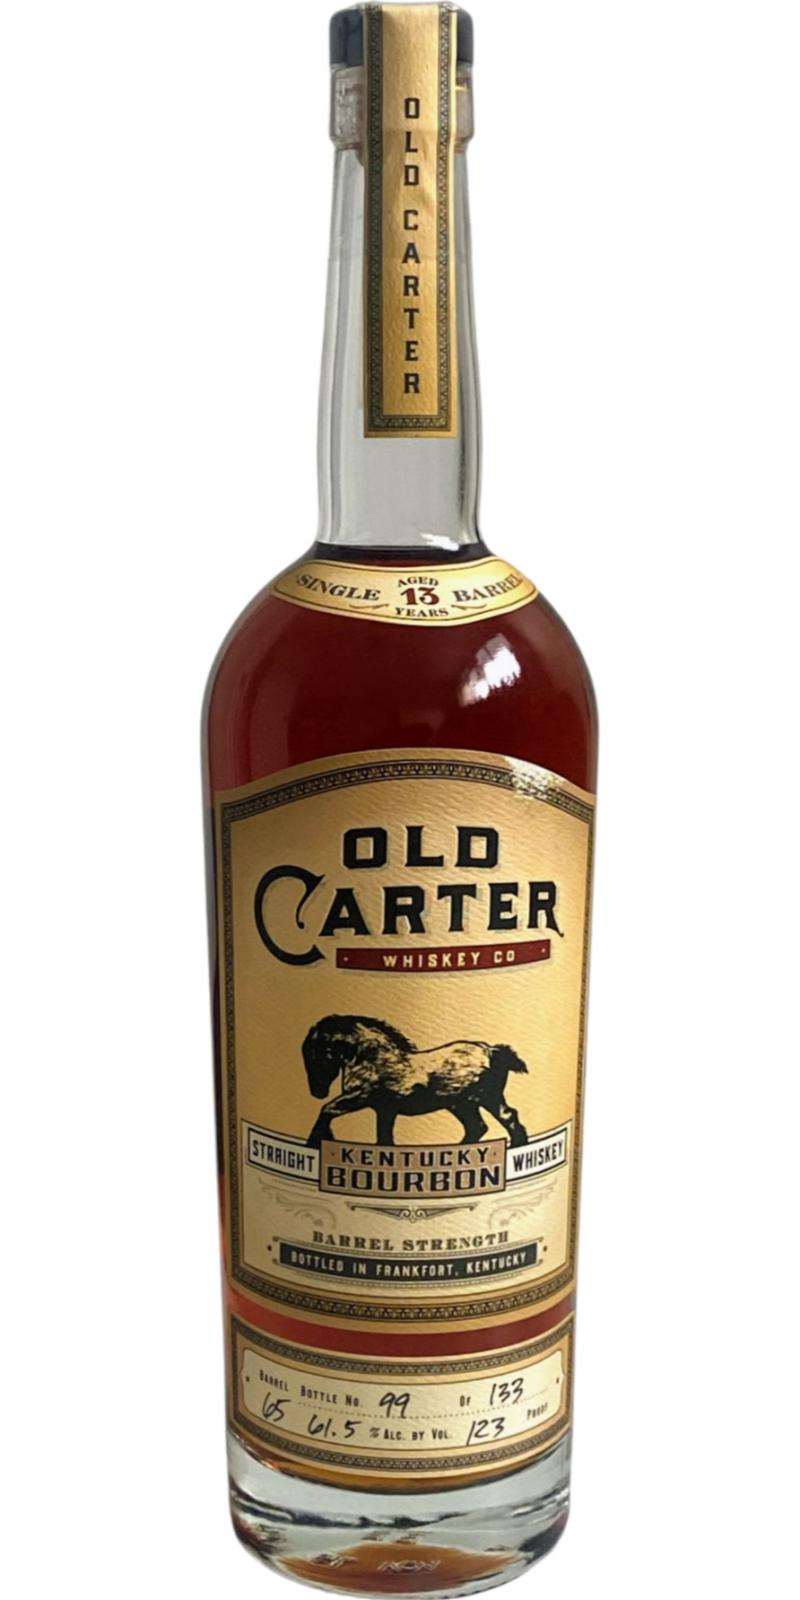 Old Carter 13-year-old